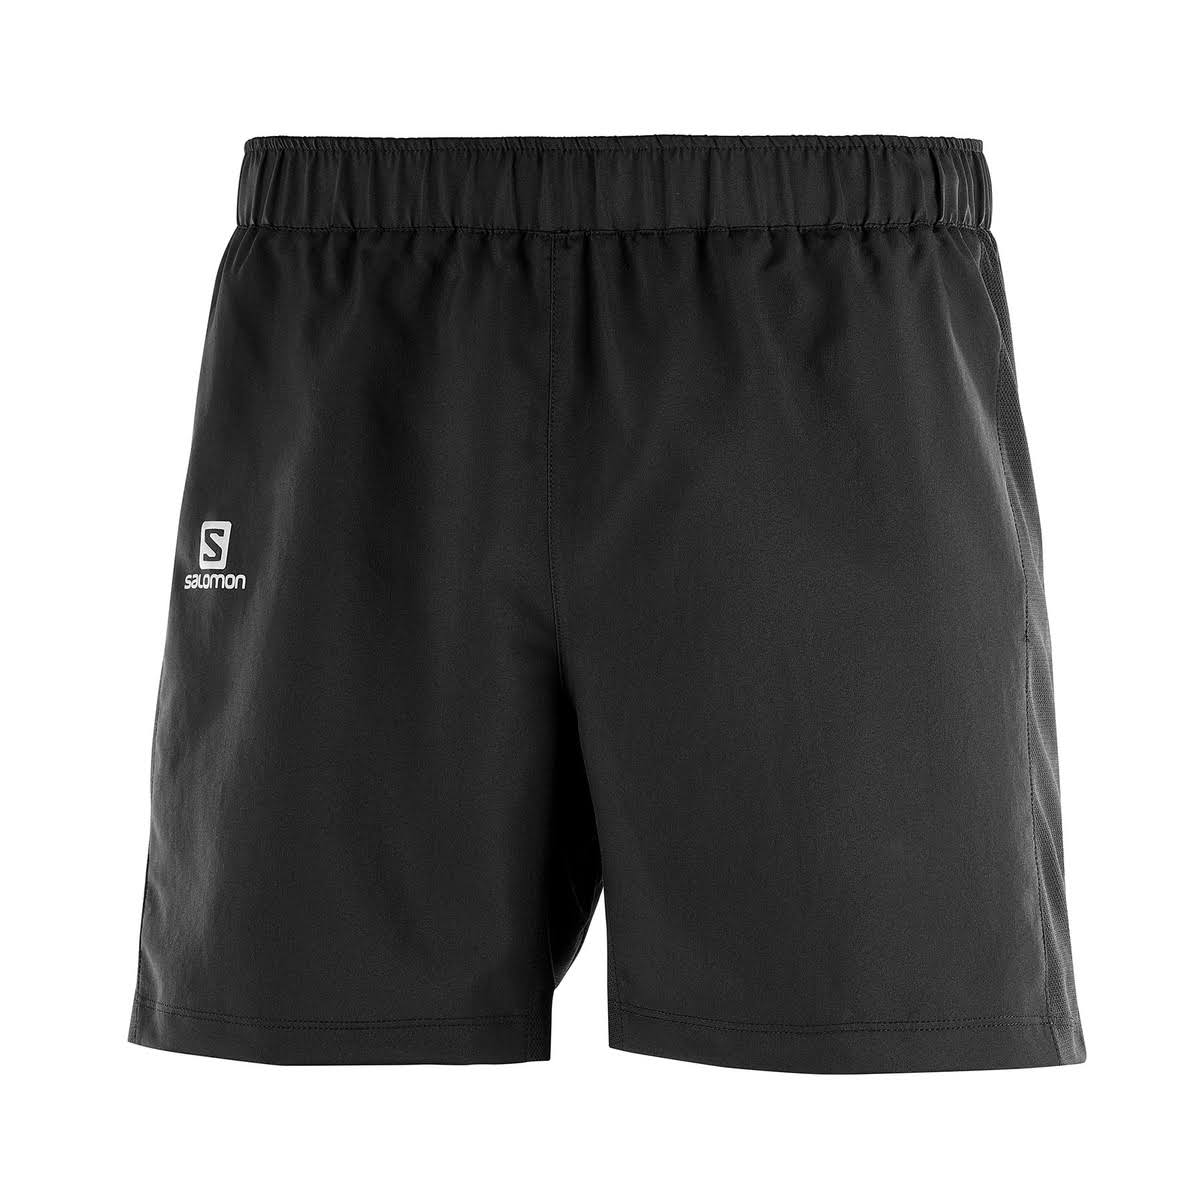 Salomon Men's Agile Running Shorts - Black, Medium, 5""